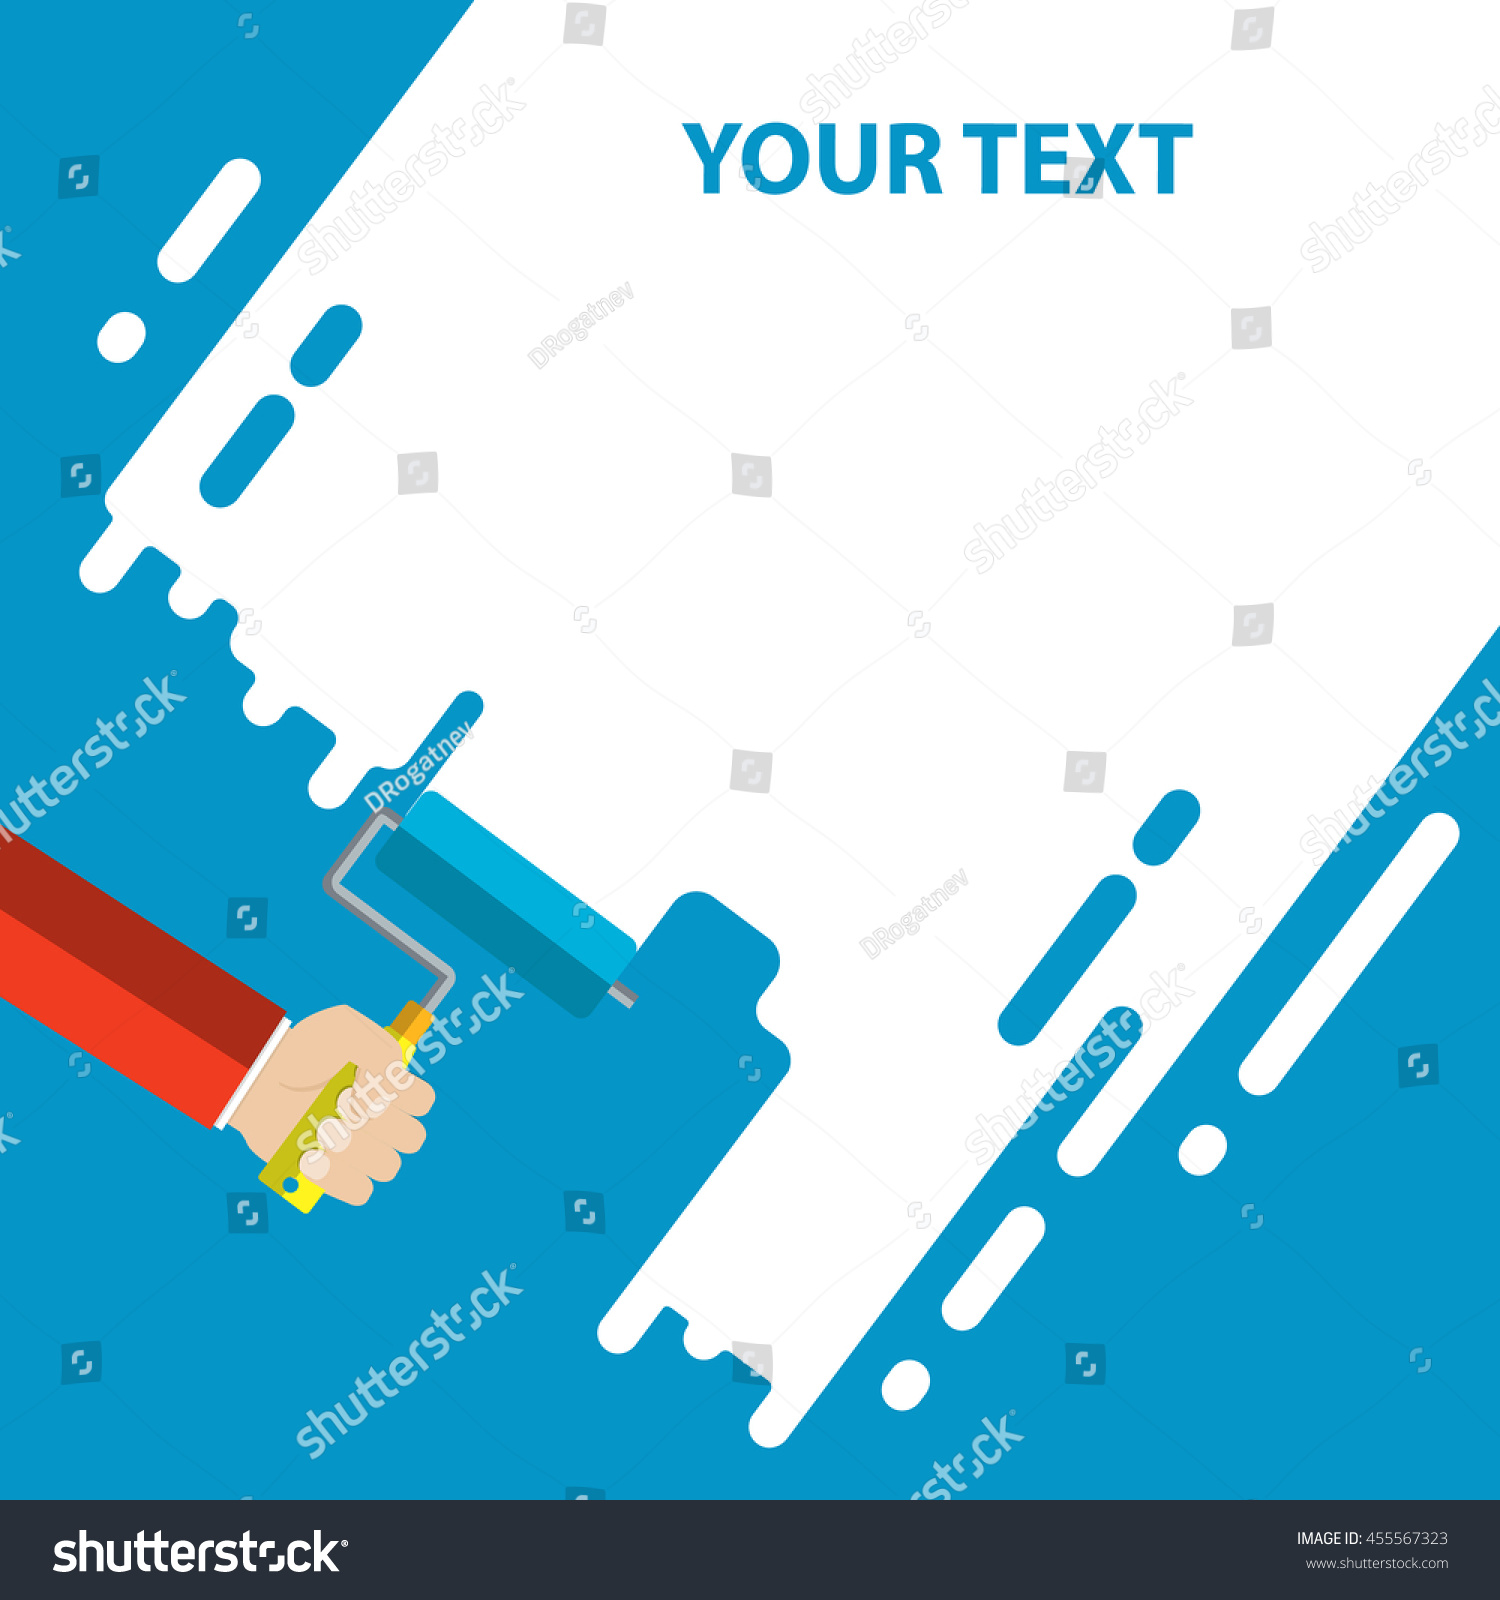 mens hand holds paint roller blue stock vector 455567323 men s hand holds a paint roller with a blue color interior design repair concept